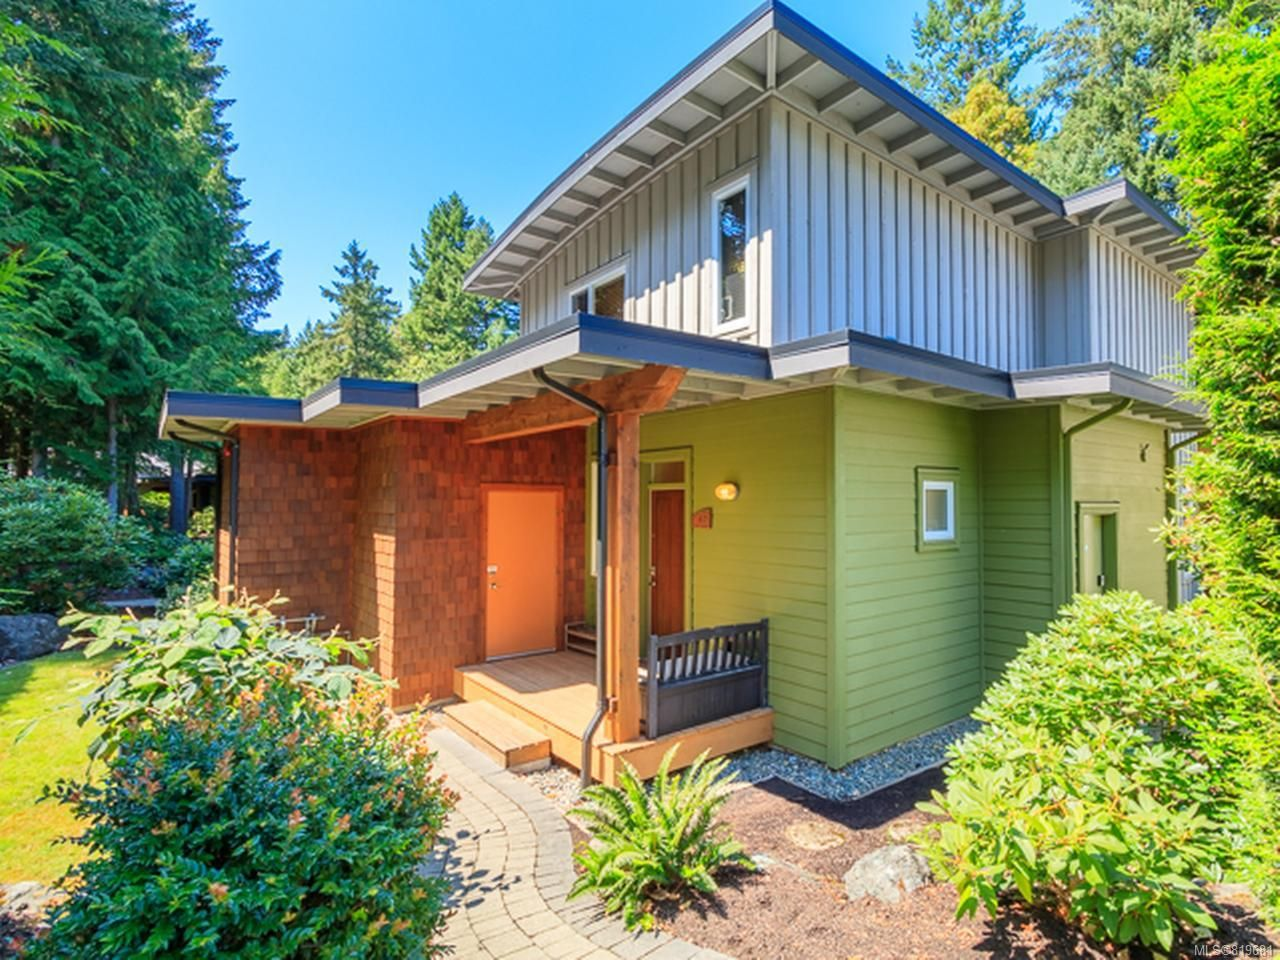 Main Photo: 47 1059 TANGLEWOOD PLACE in PARKSVILLE: PQ Parksville Row/Townhouse for sale (Parksville/Qualicum)  : MLS®# 819681